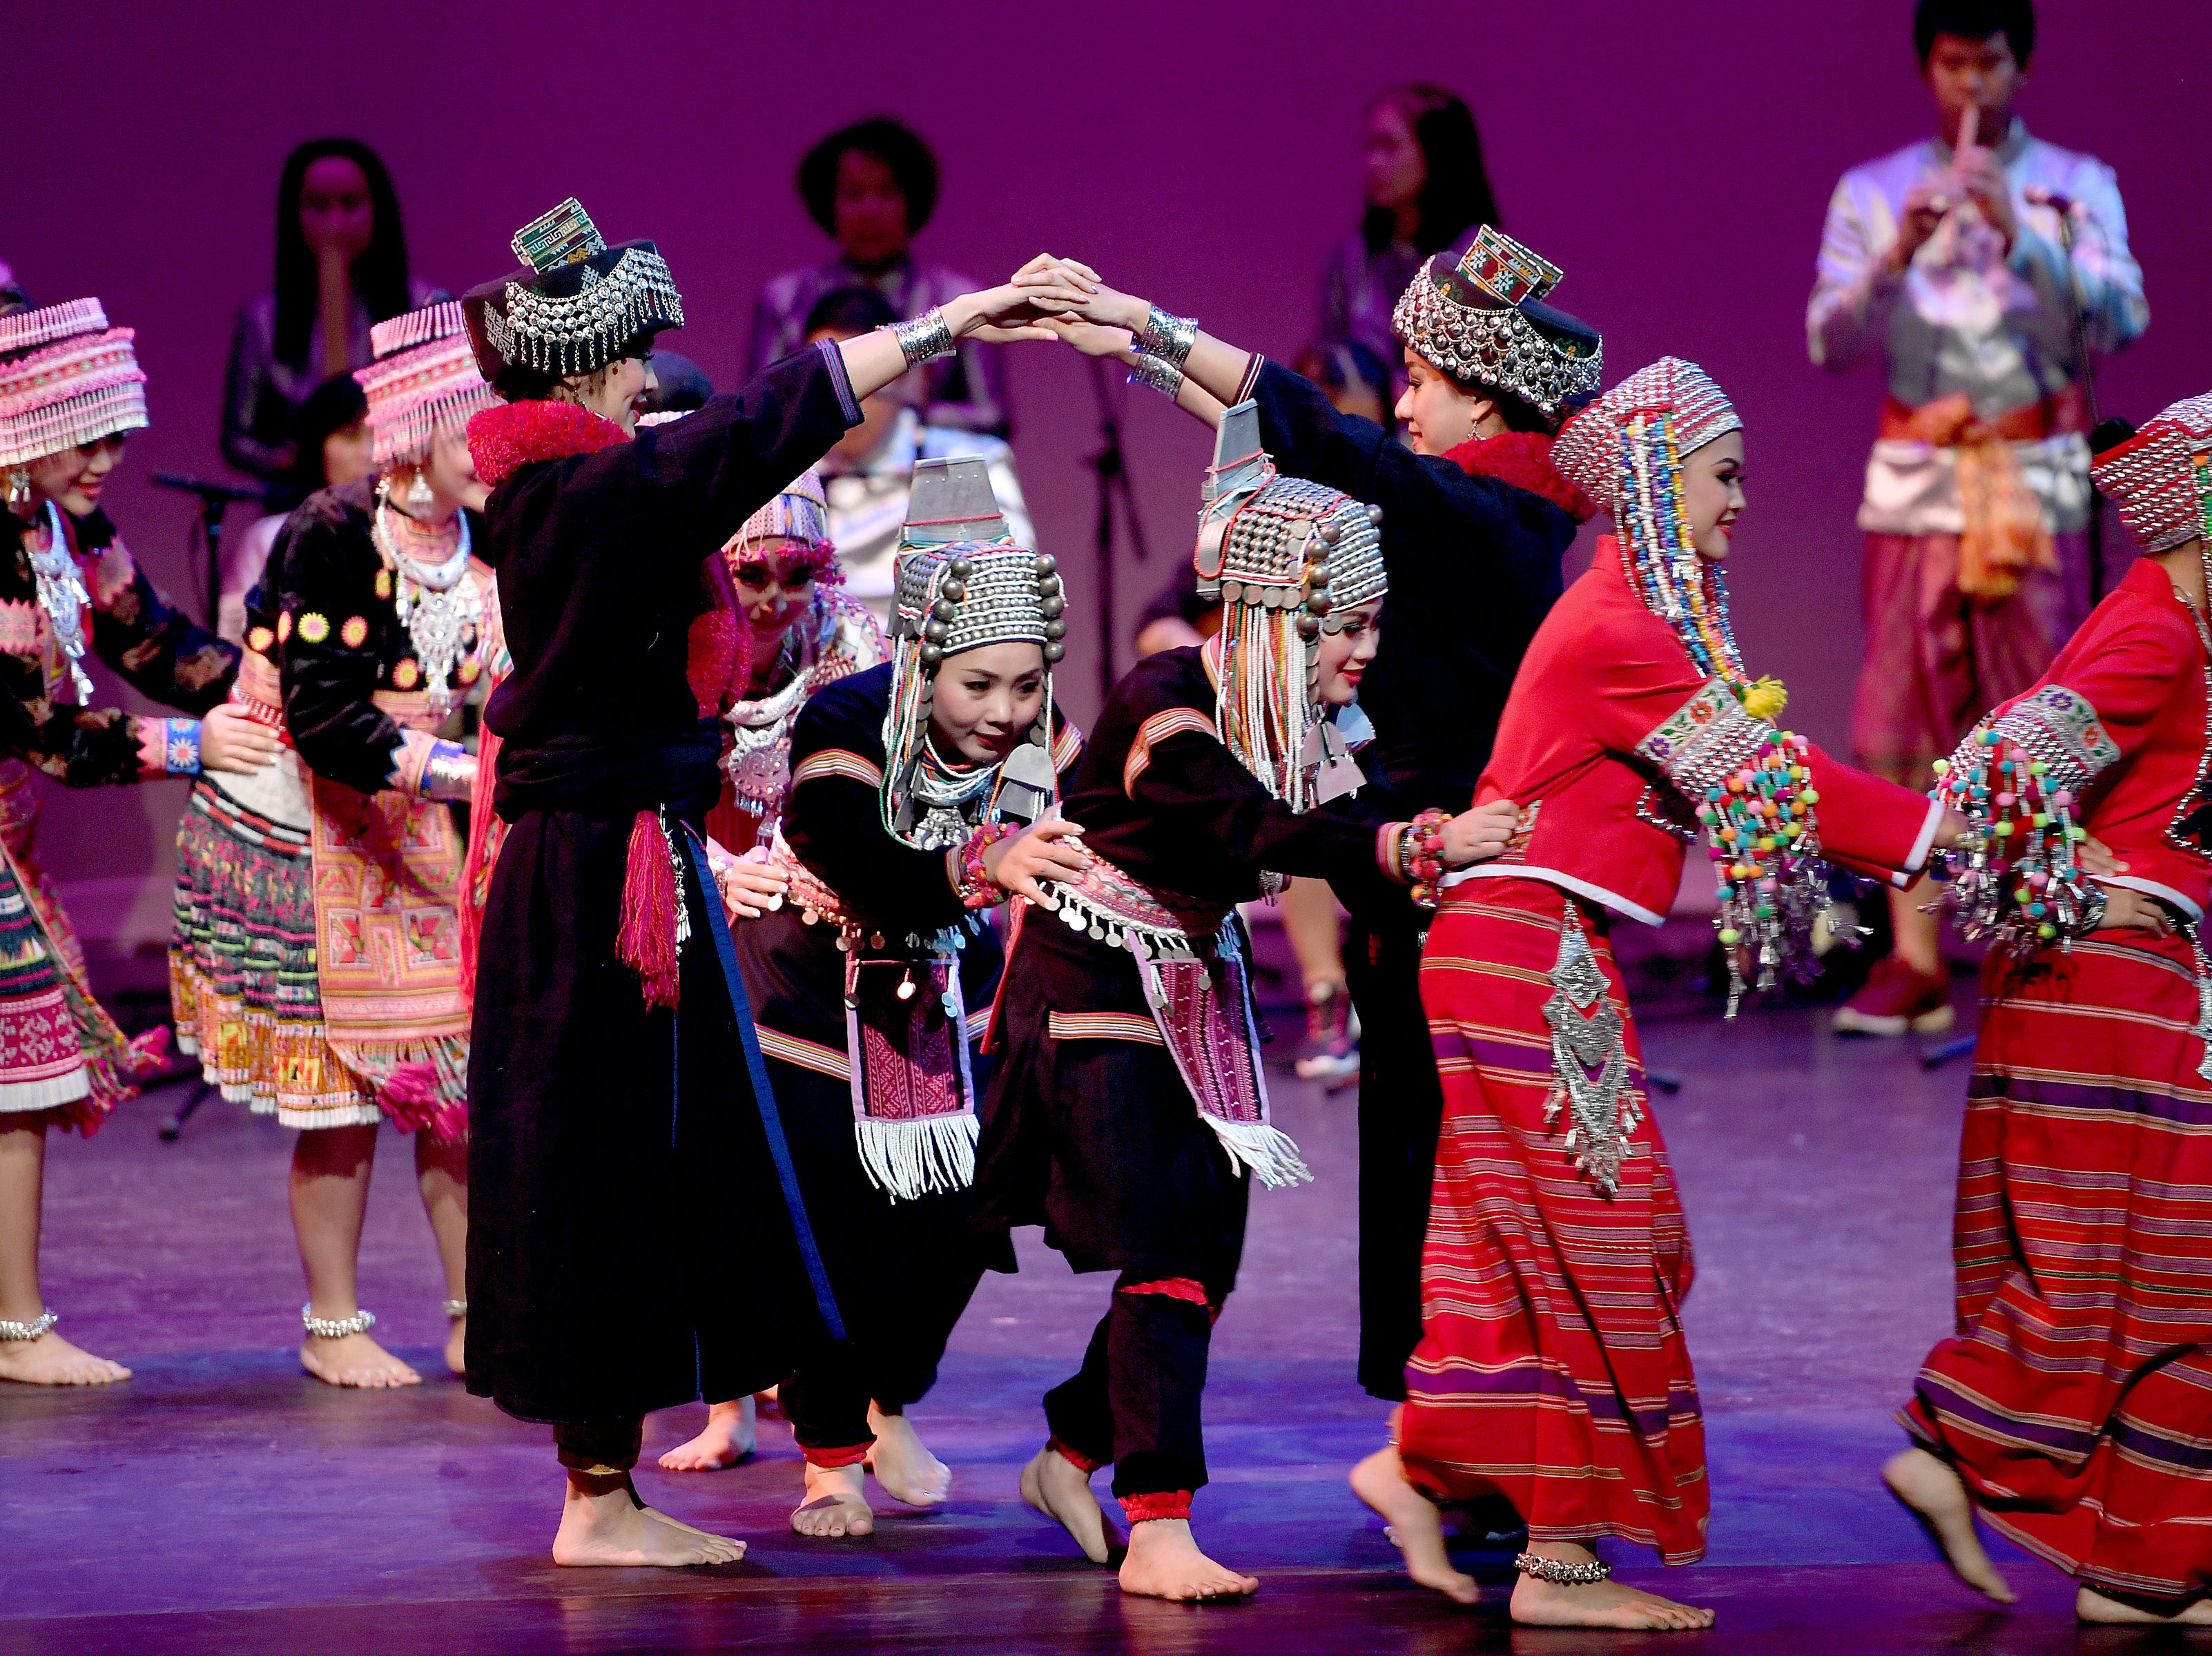 Members of Lampang Kalayanee School from Thailand perform during a Folkmoot Festival performance at the Diana Wortham Theatre on Friday, Aug. 27, 2018.